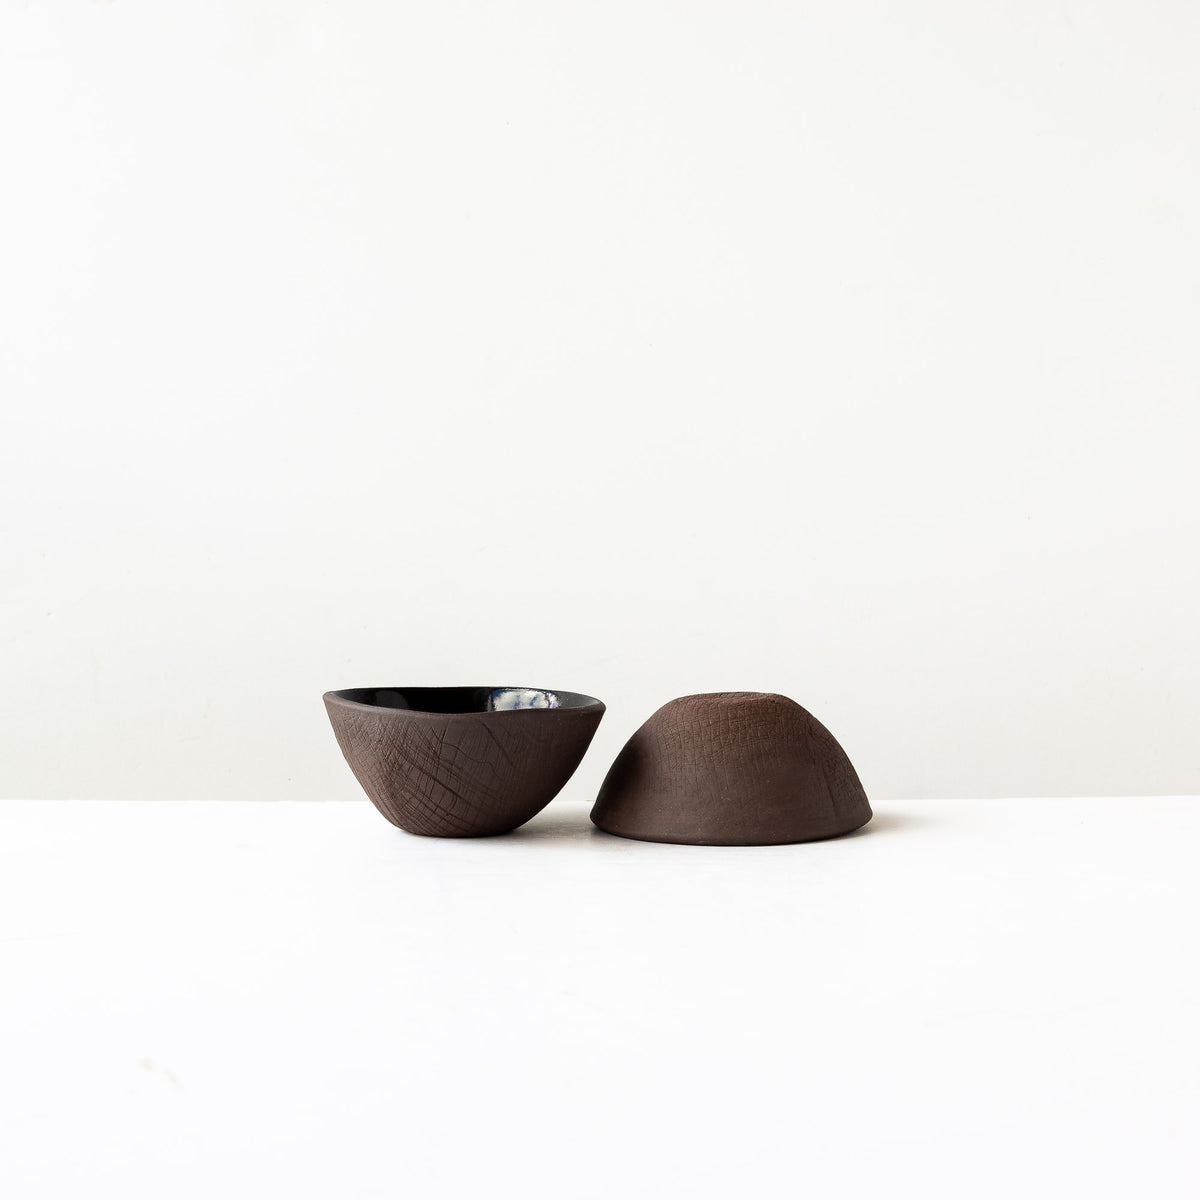 Side View - Two Handmade Small Bowls in Black Lacquered Stoneware - Sold by Chic & Basta